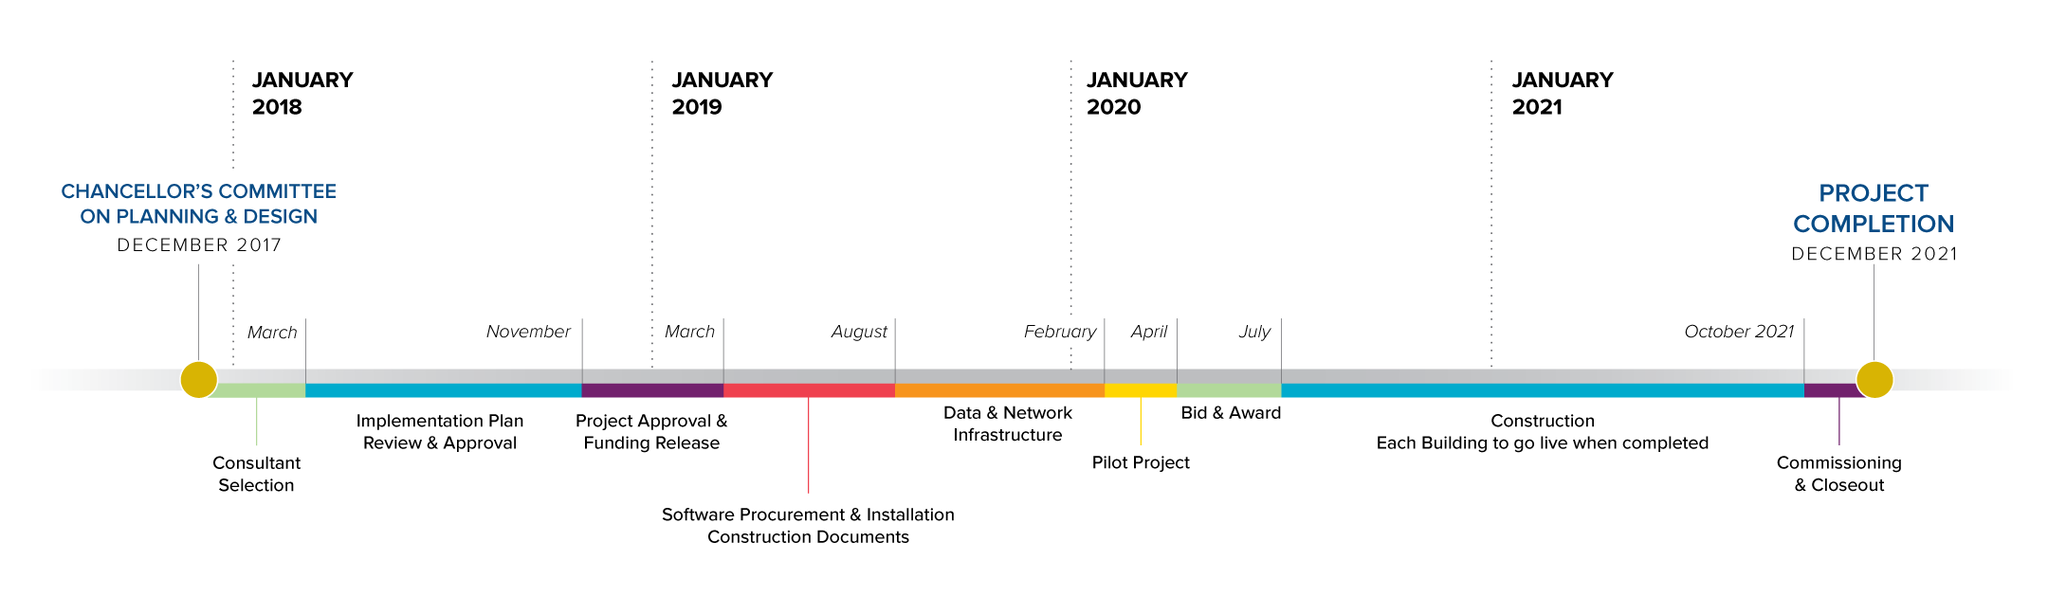 A timeline showing the scope of the Campus Security Standards Implementation project